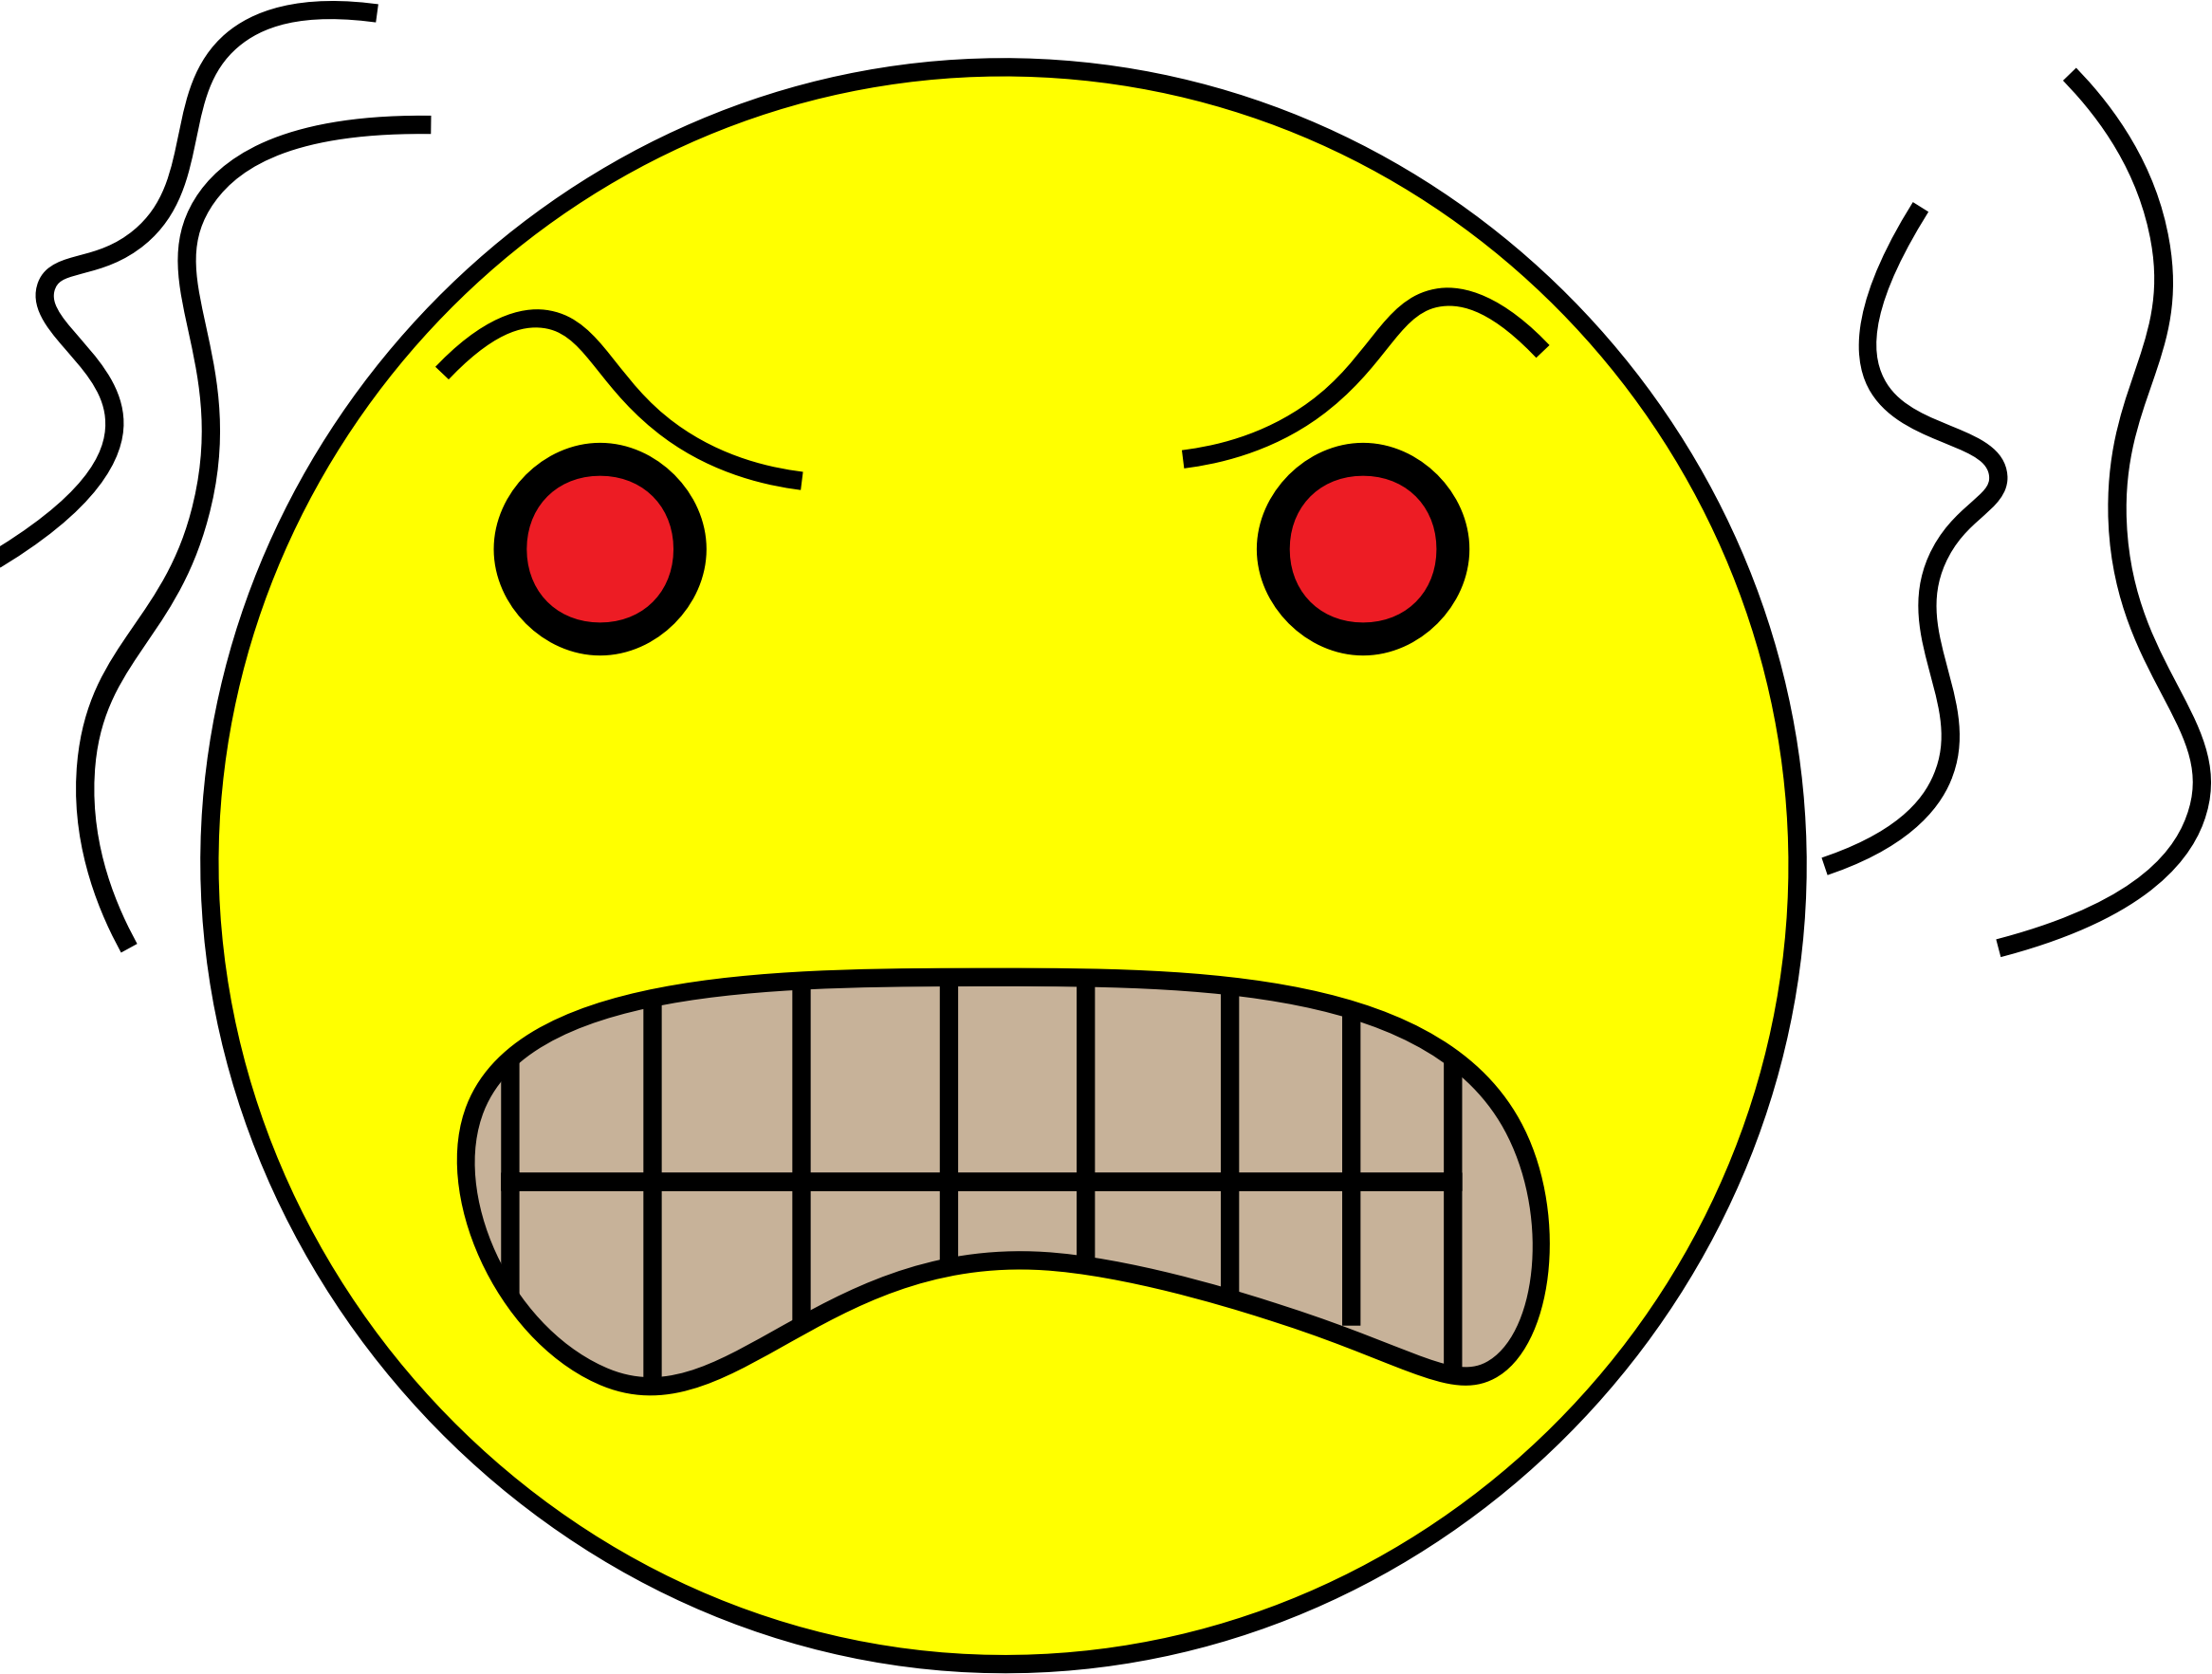 Frustrated clipart frustration face. Yellow angry head big